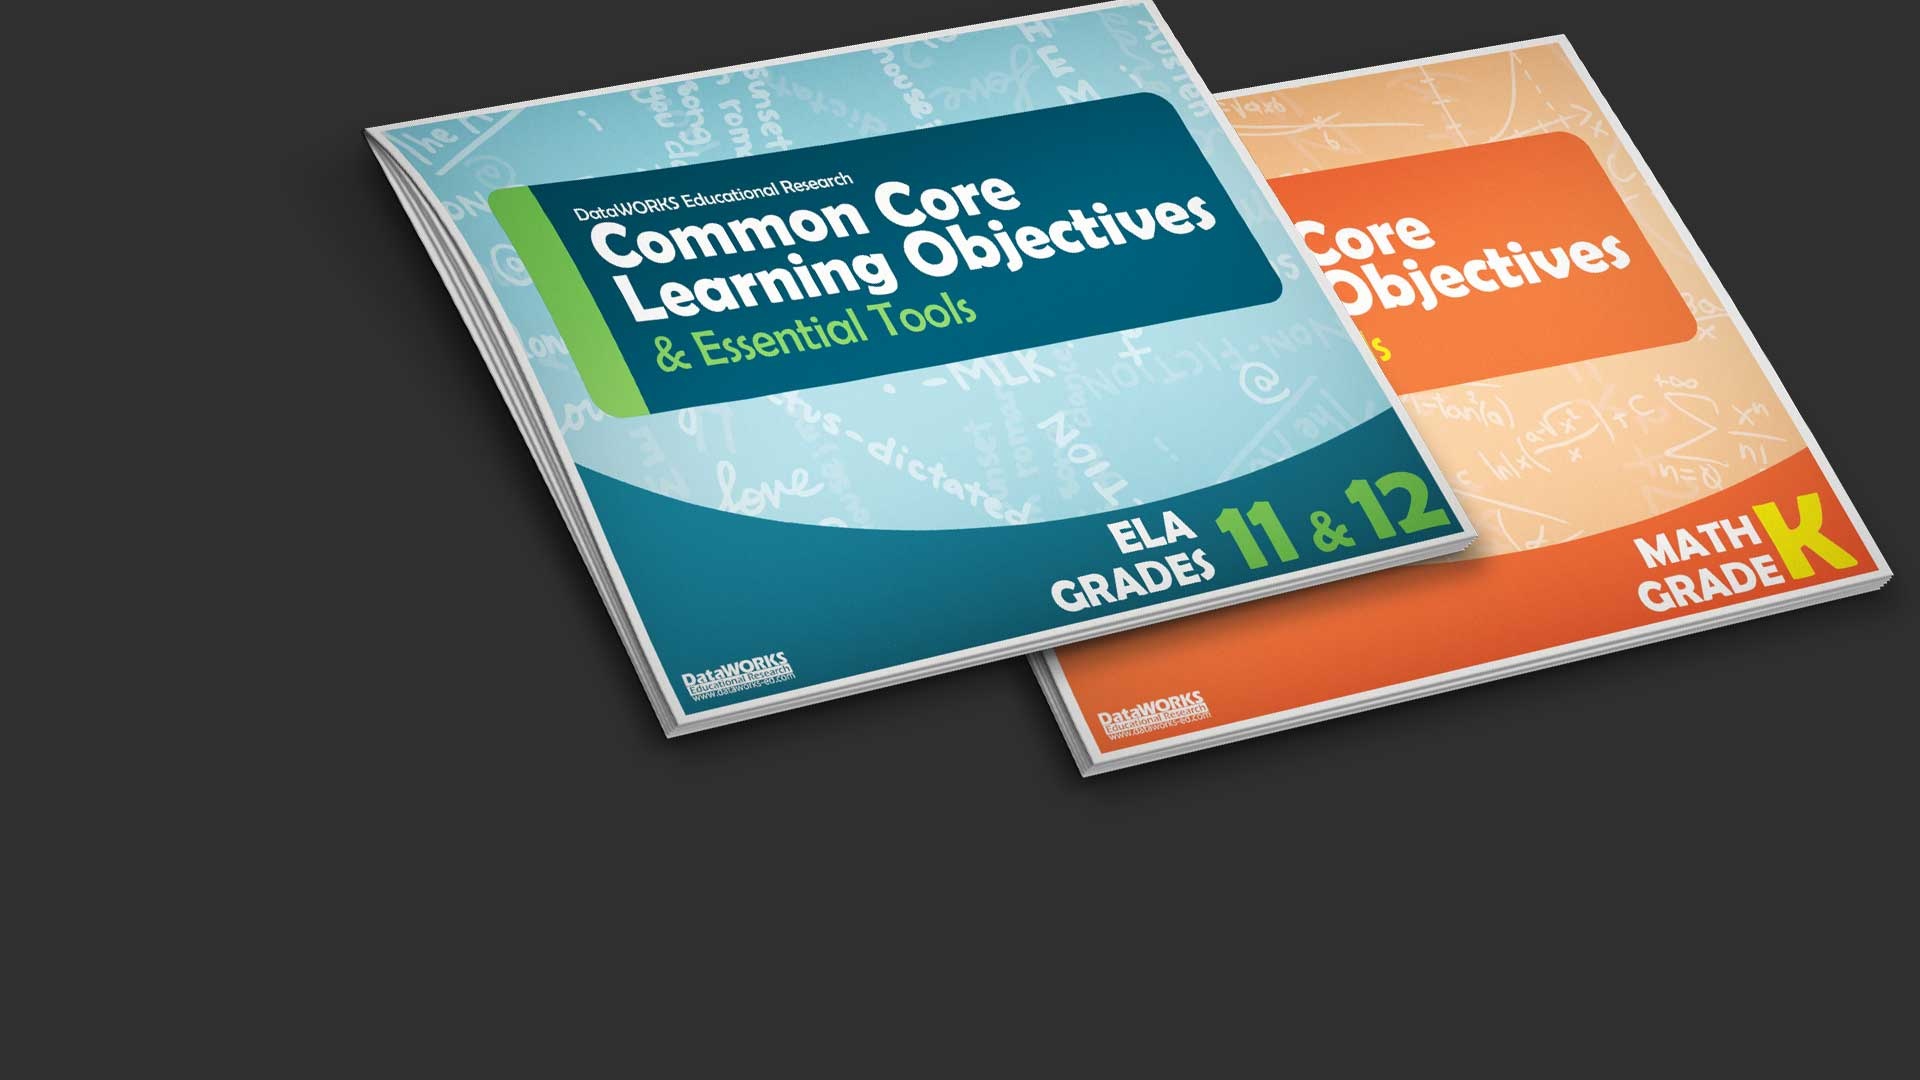 DataWORKS Common Core Learning Objectives